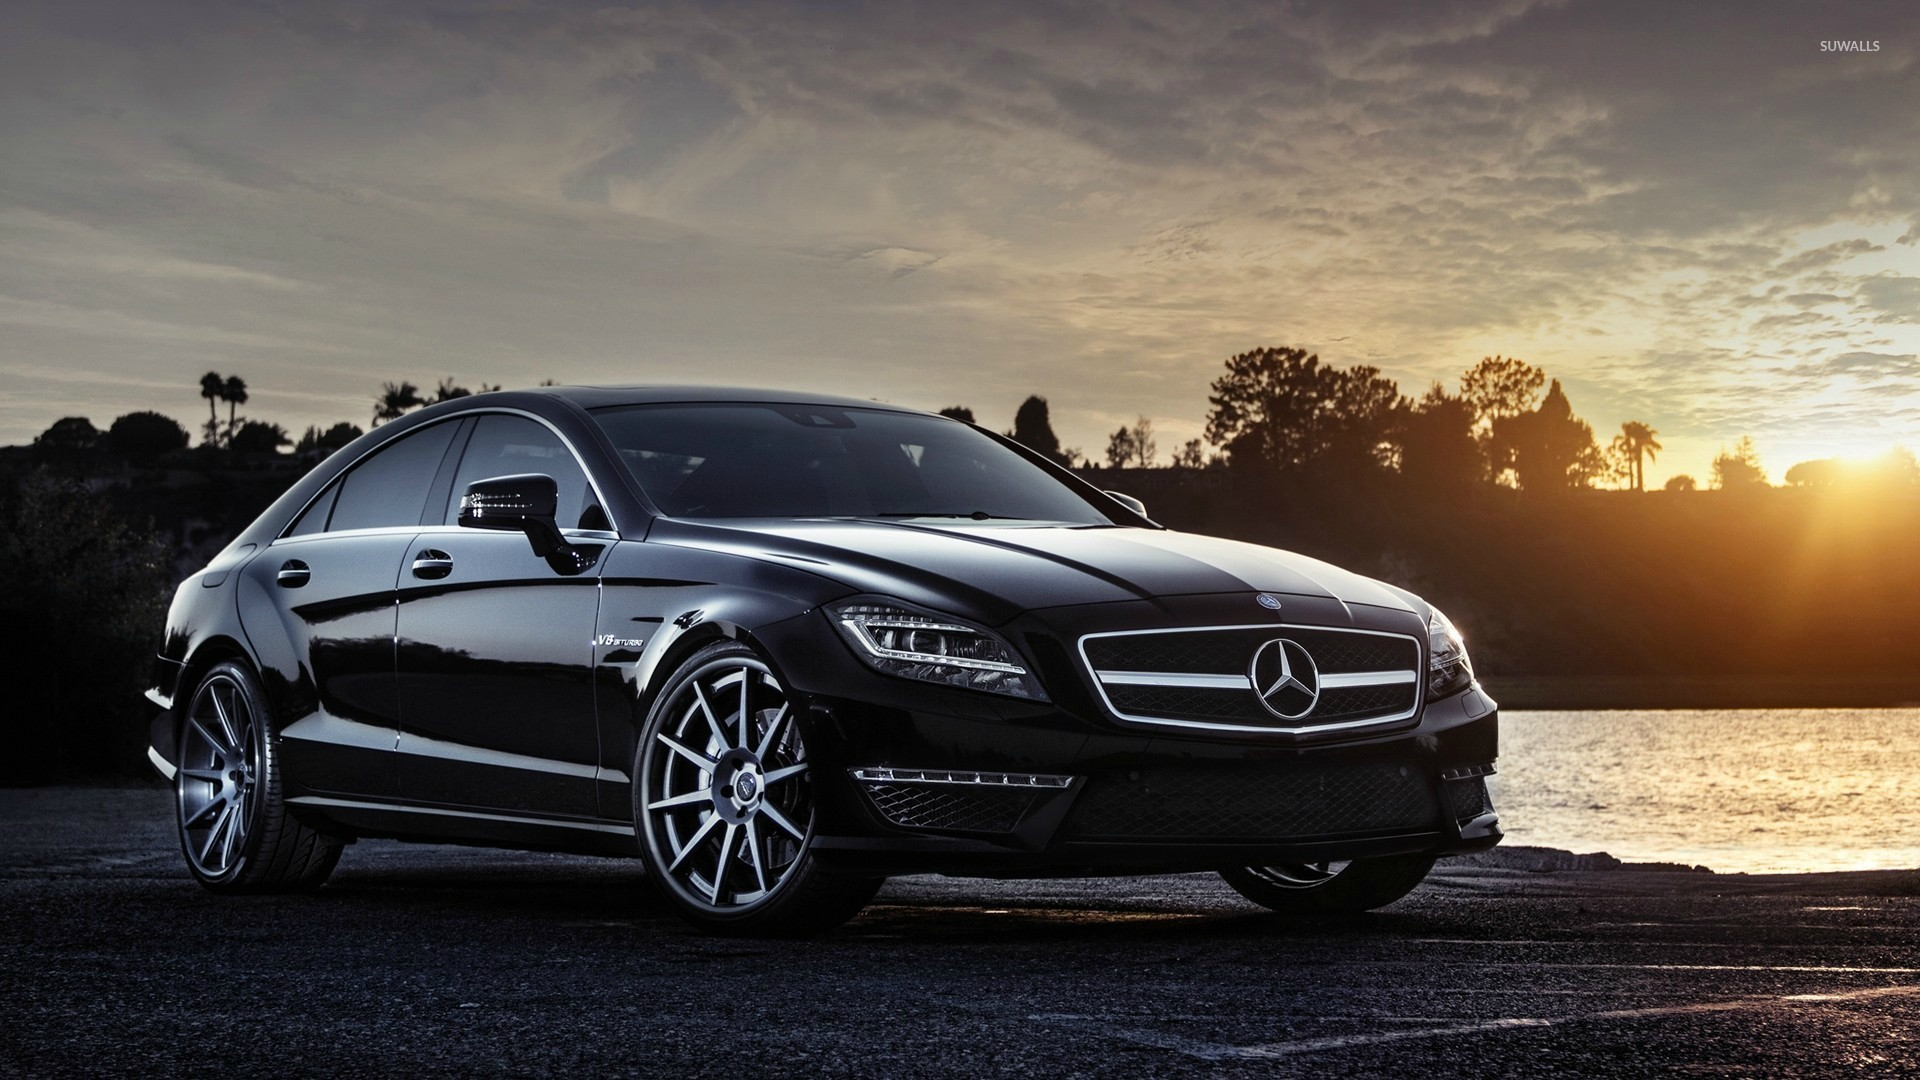 Black mercedes benz cls63 amg at sunset wallpaper car for Cars of mercedes benz